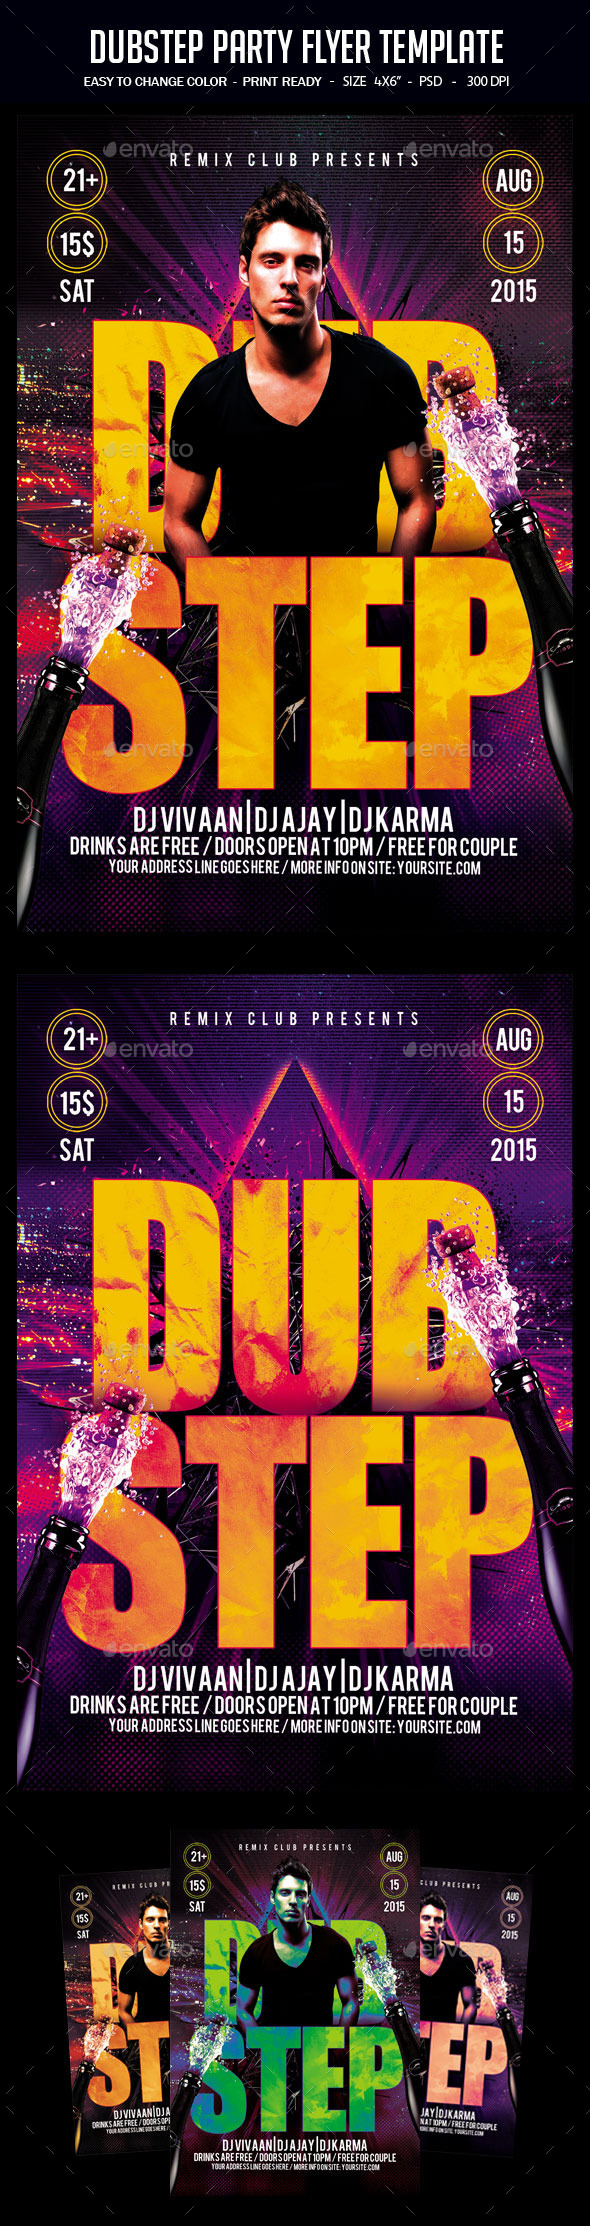 Dubstep Party Flyer Template - Clubs & Parties Events